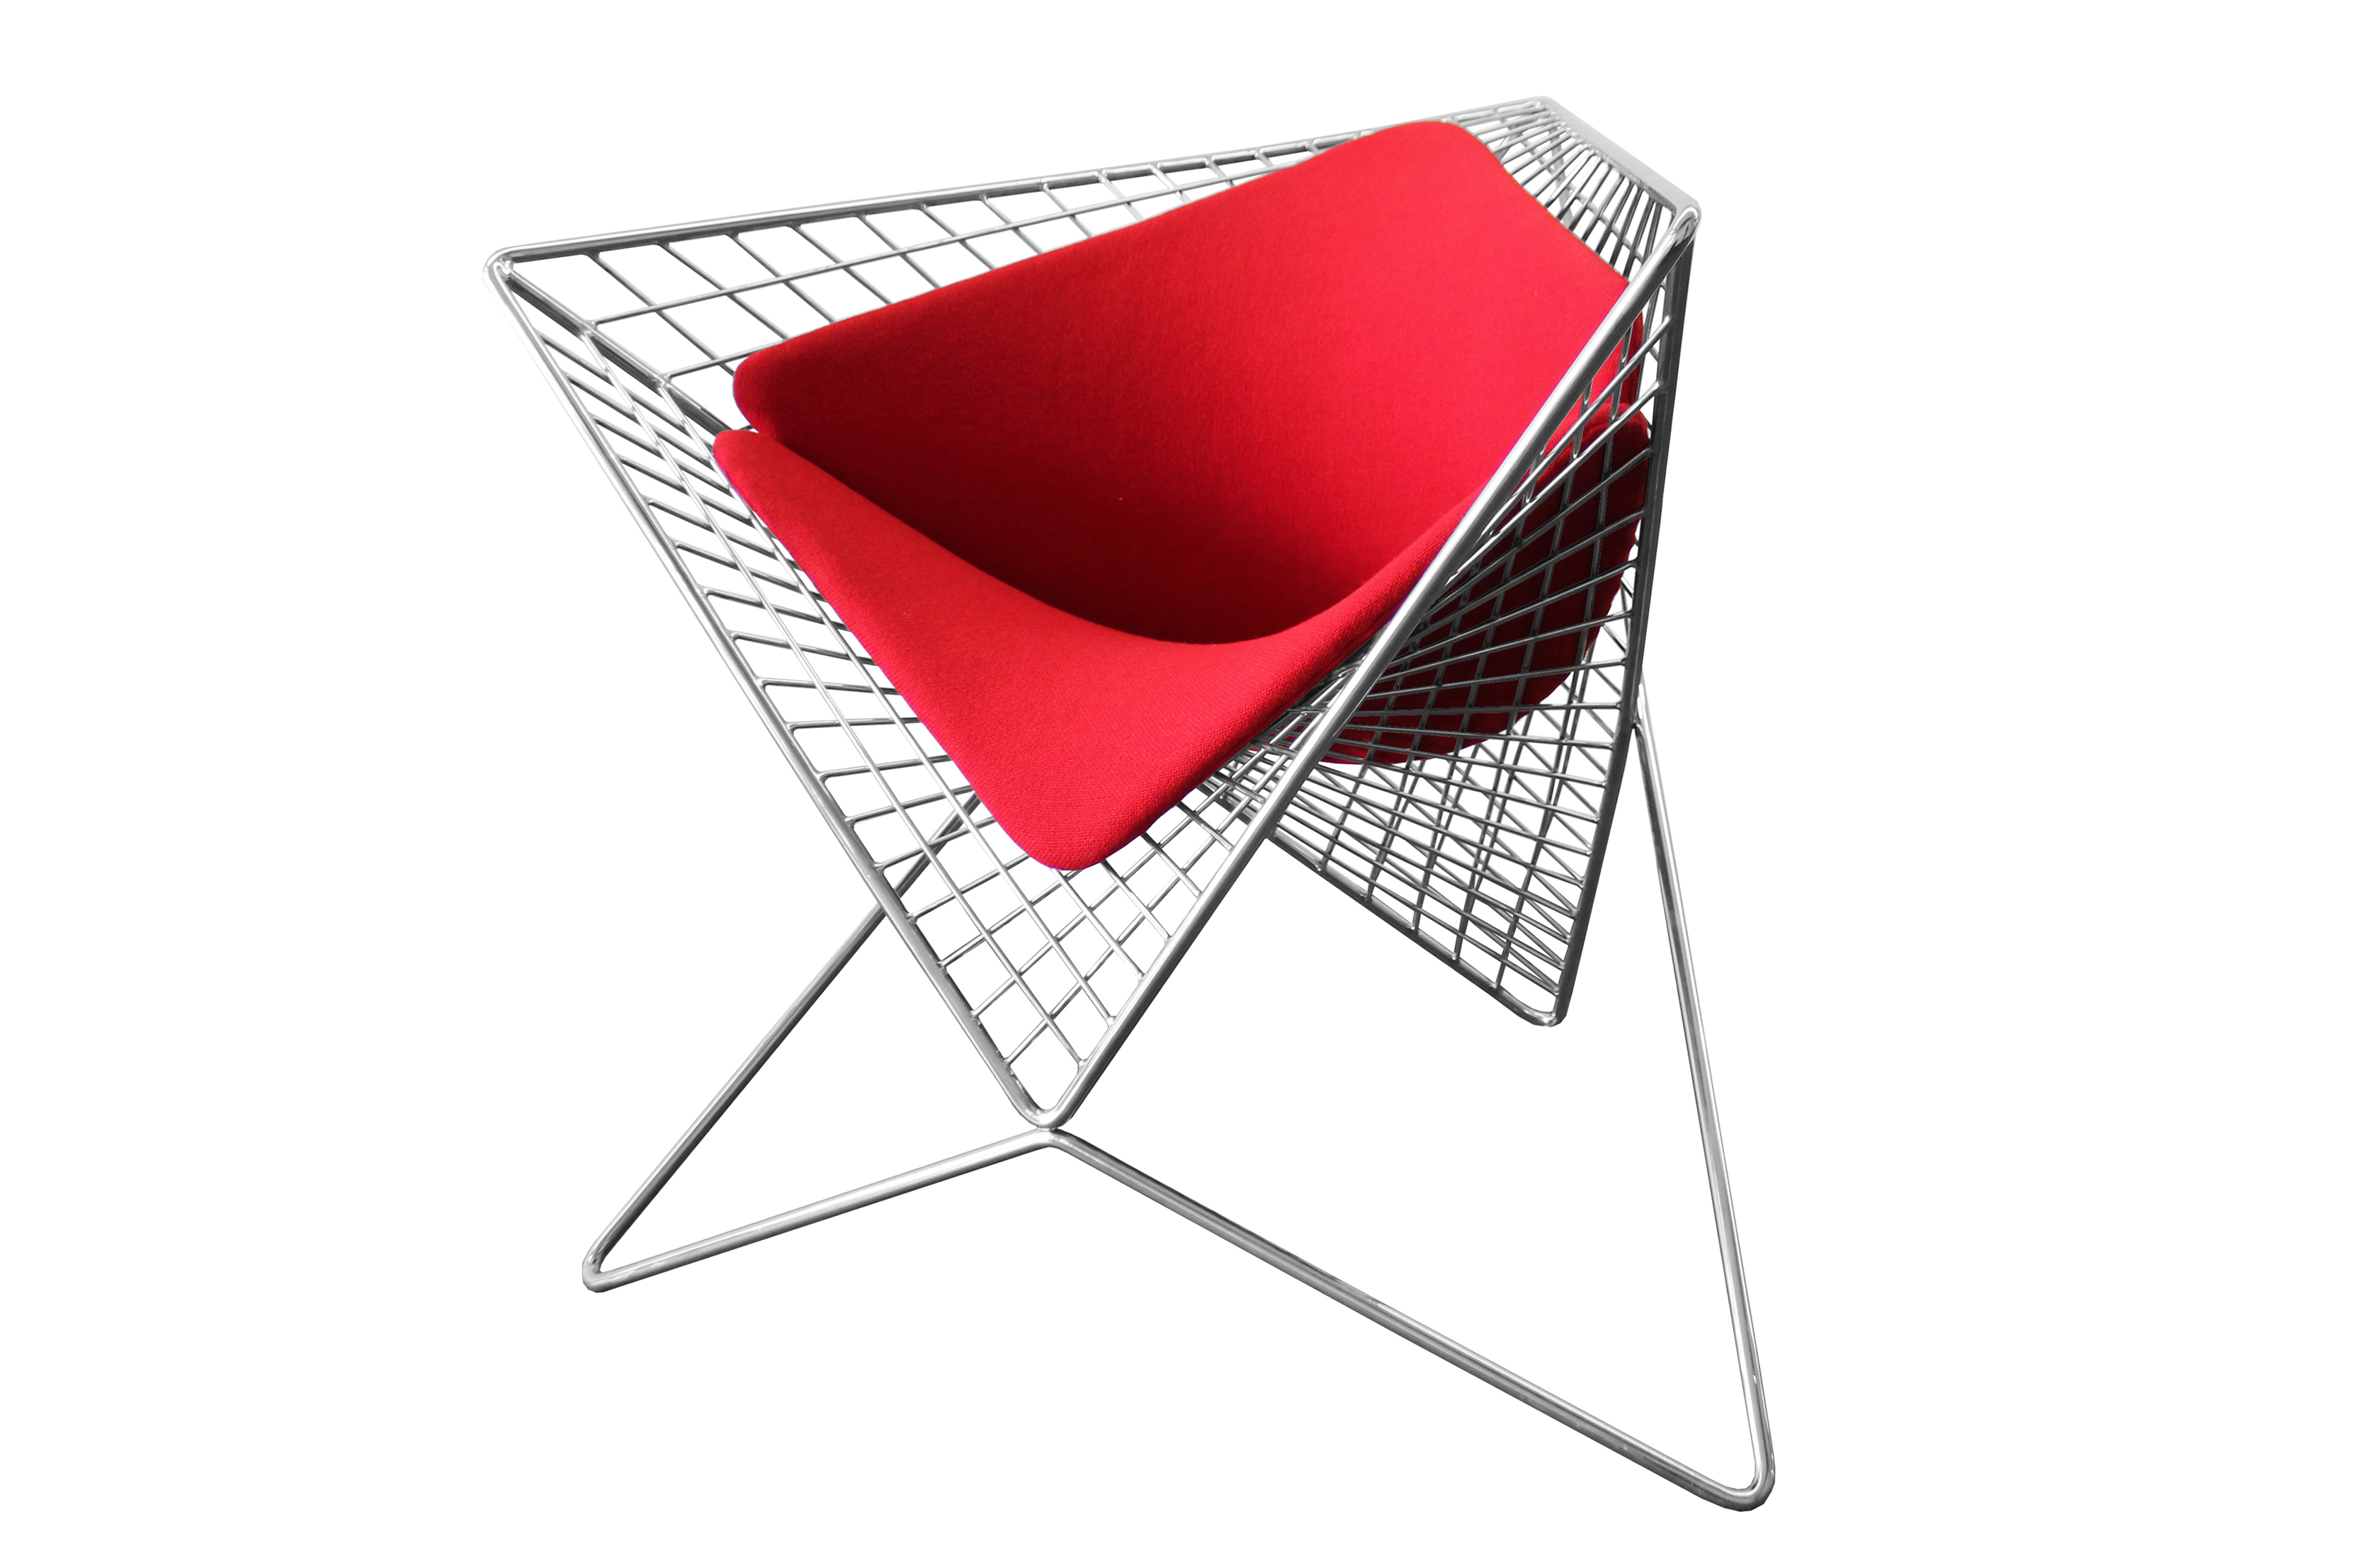 chair design architects flex steel chairs parabola wins red dot and good awards